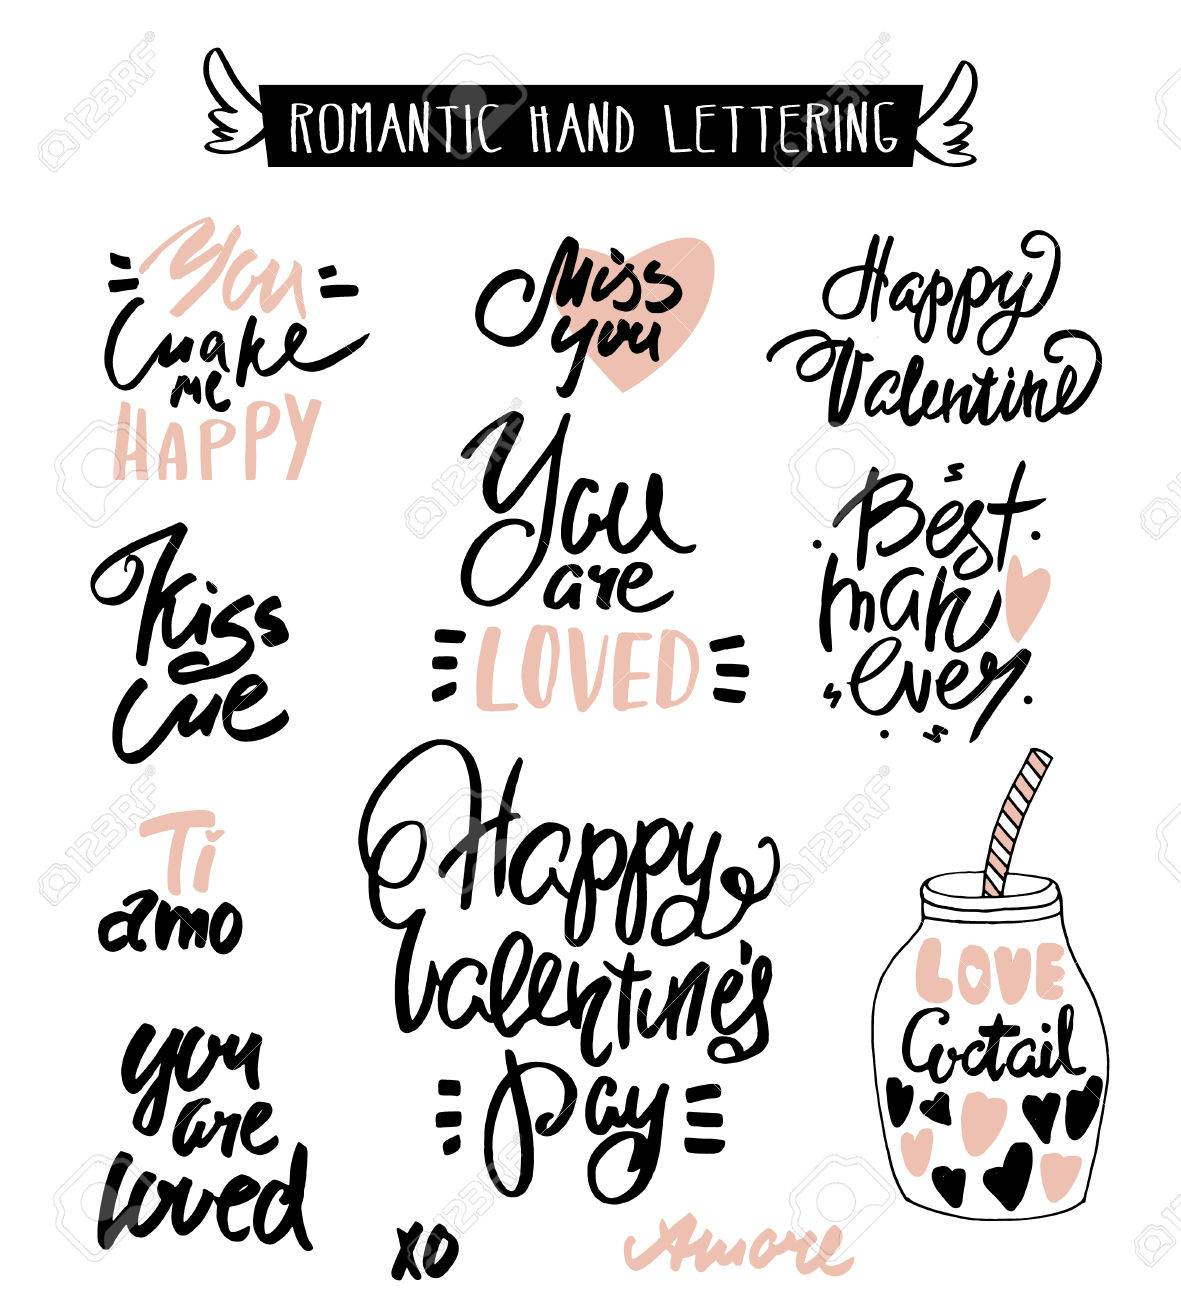 Romantic Hand Lettering Love Quotes Beautiful Hand Drawn Lettering